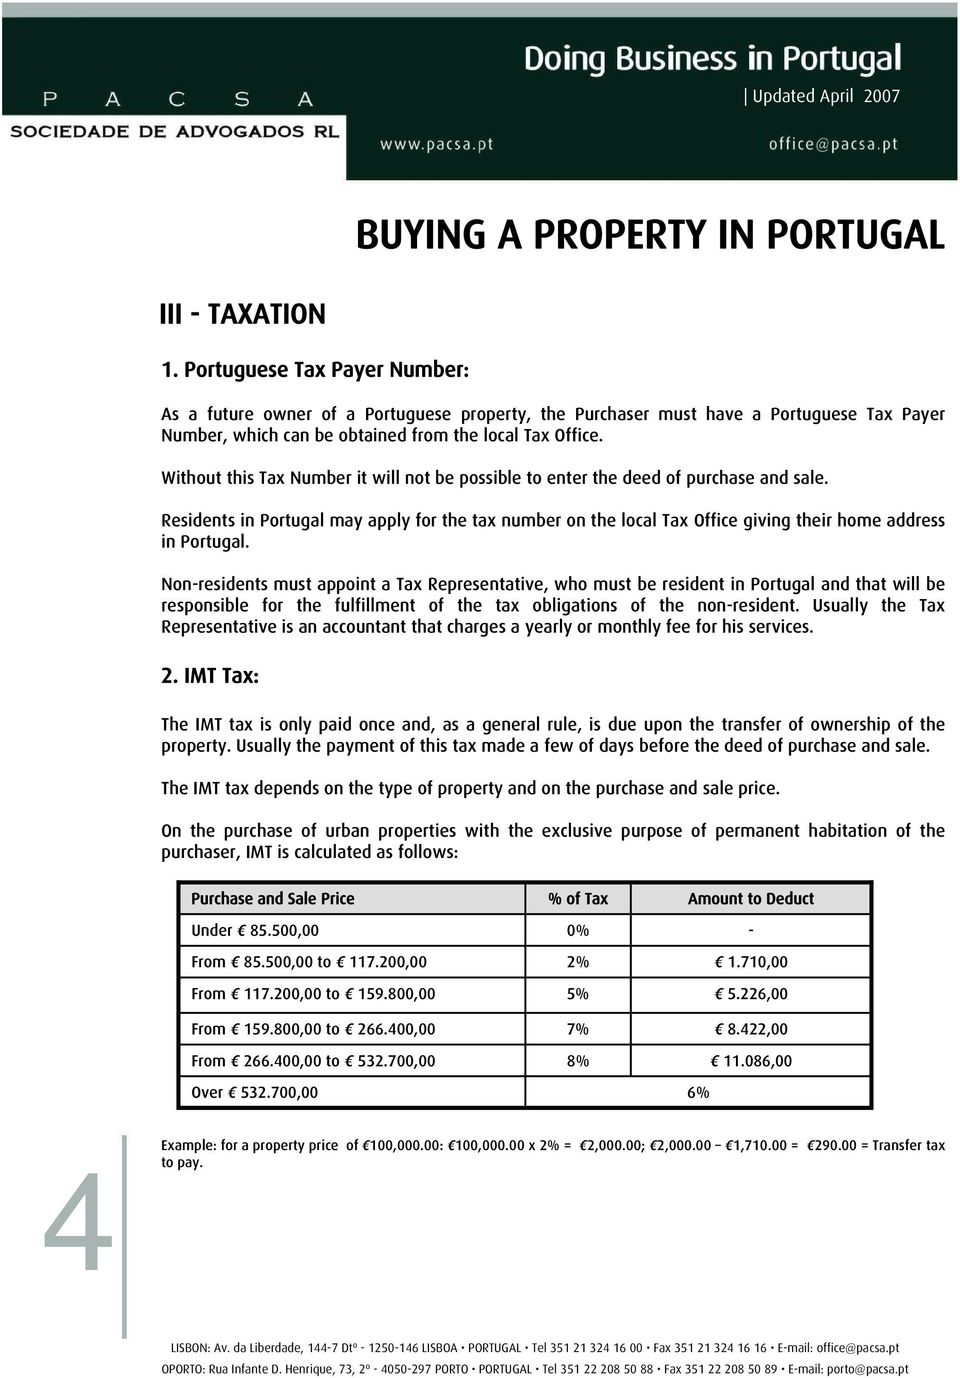 Residents in Portugal may apply for the tax number on the local Tax Office giving their home address in Portugal.